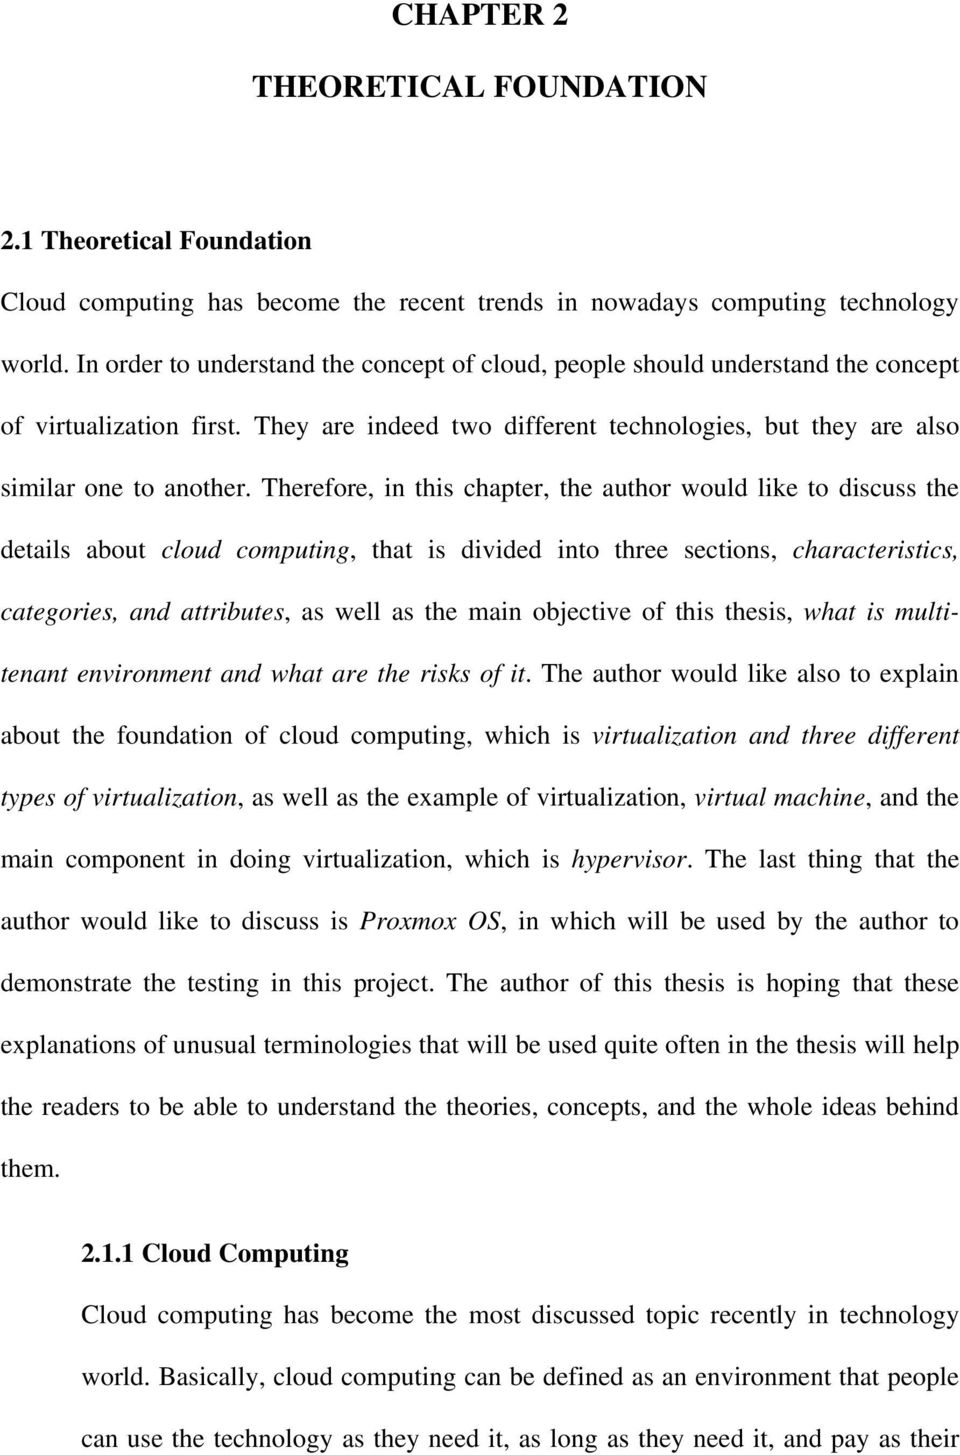 Therefore, in this chapter, the author would like to discuss the details about cloud computing, that is divided into three sections, characteristics, categories, and attributes, as well as the main